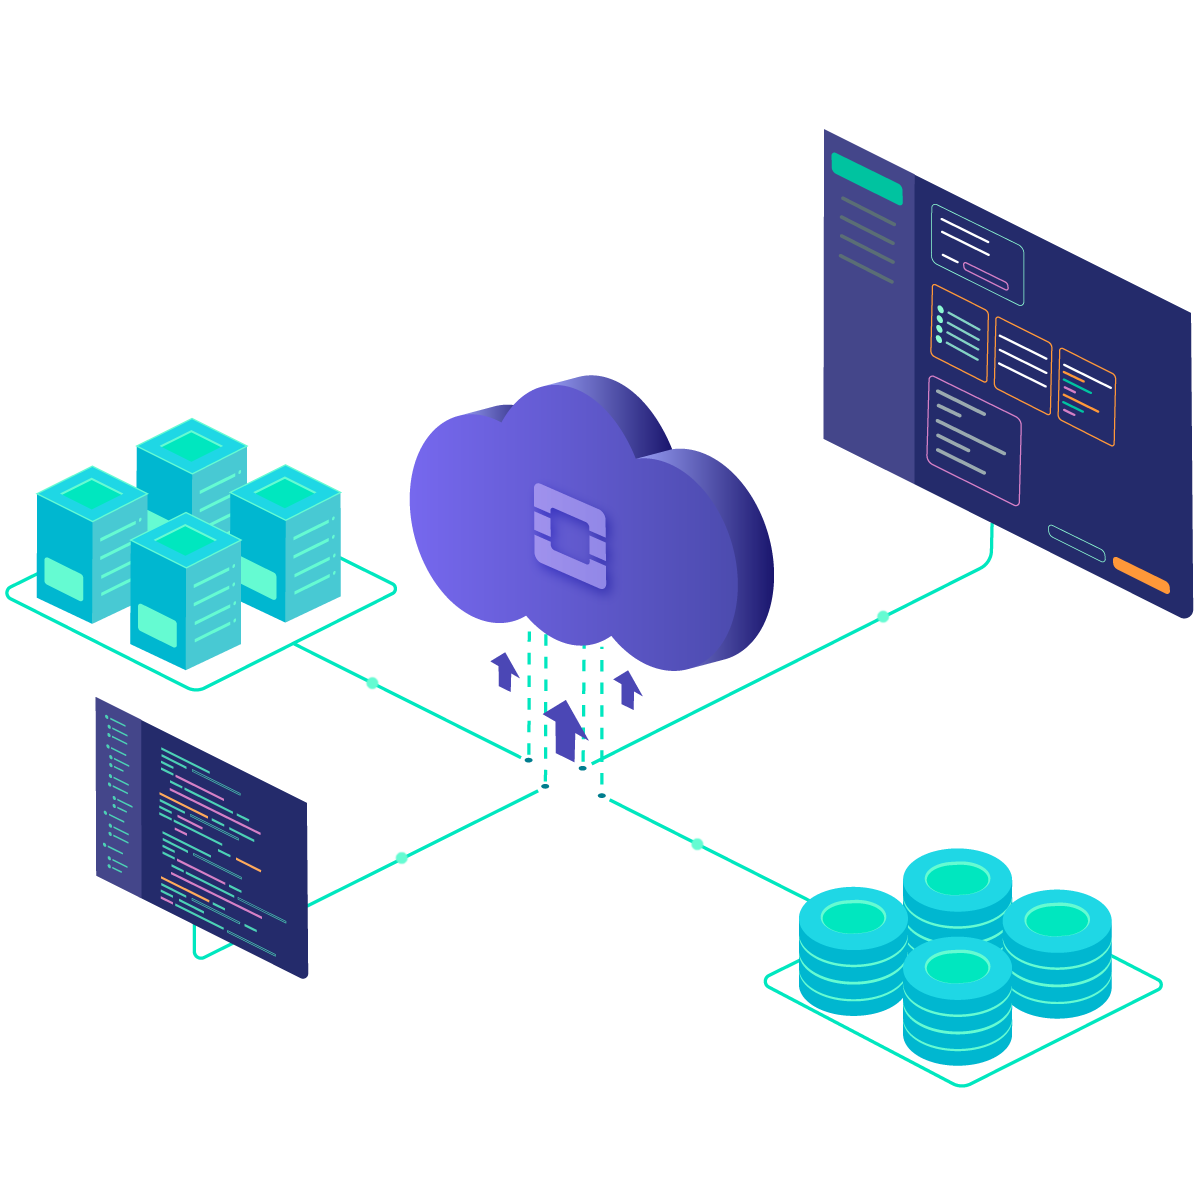 secured connection between cloud and virtual machine